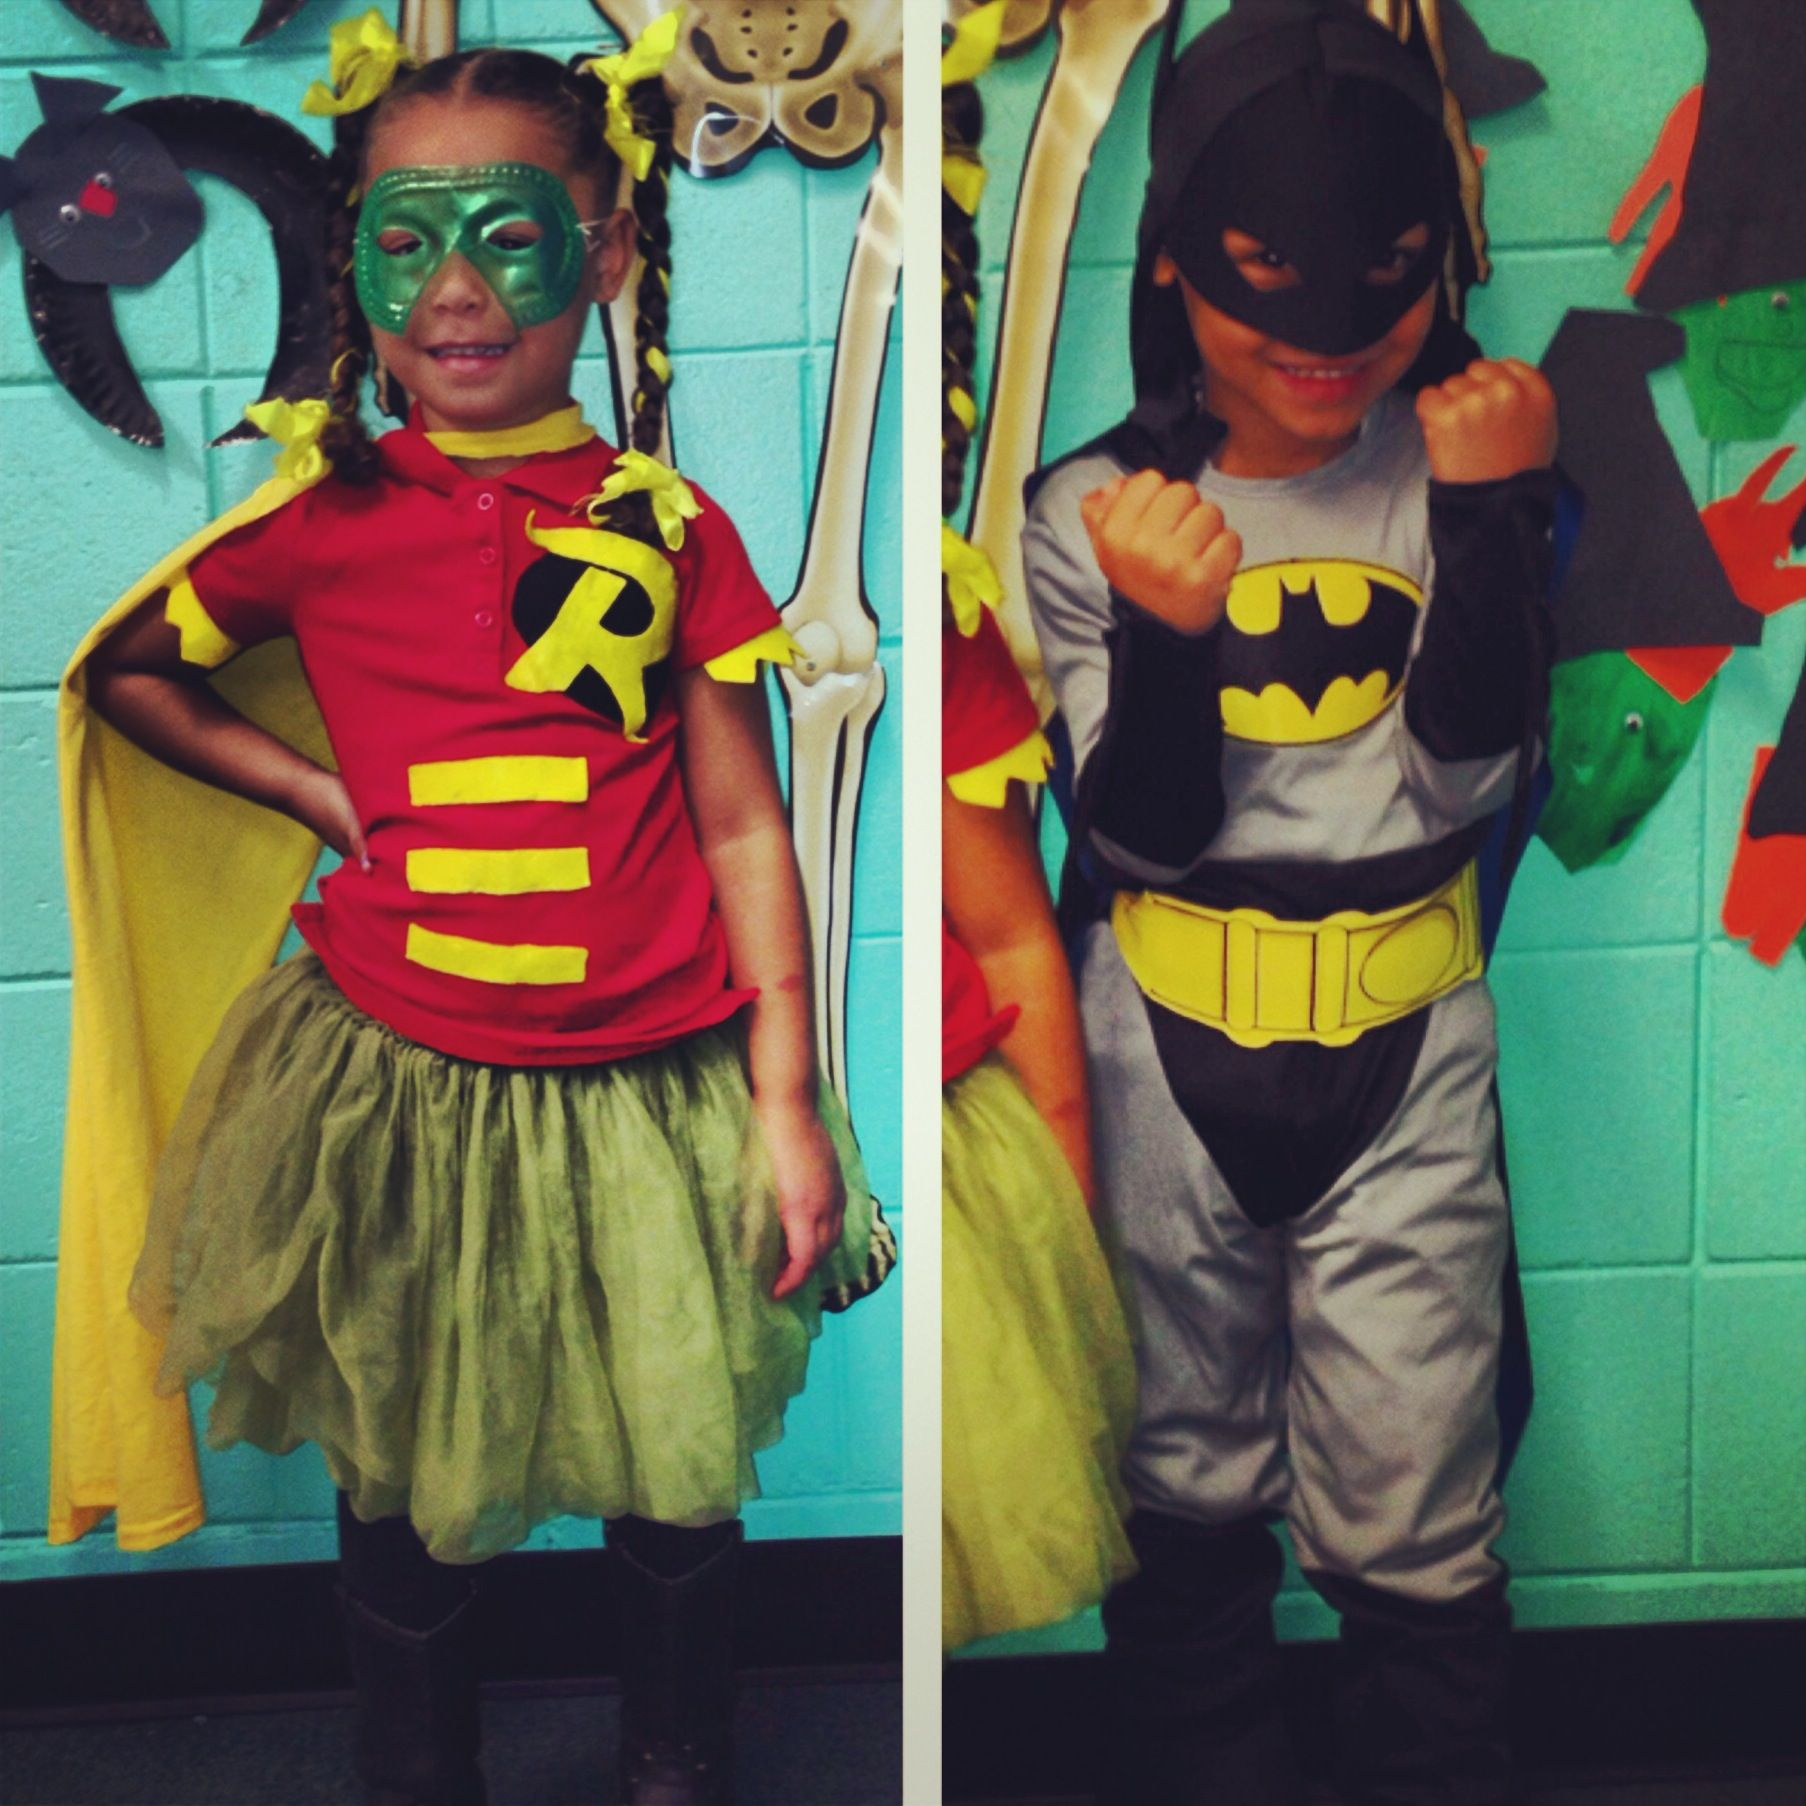 Home made Robin Store bought Batman Twin costume ideas